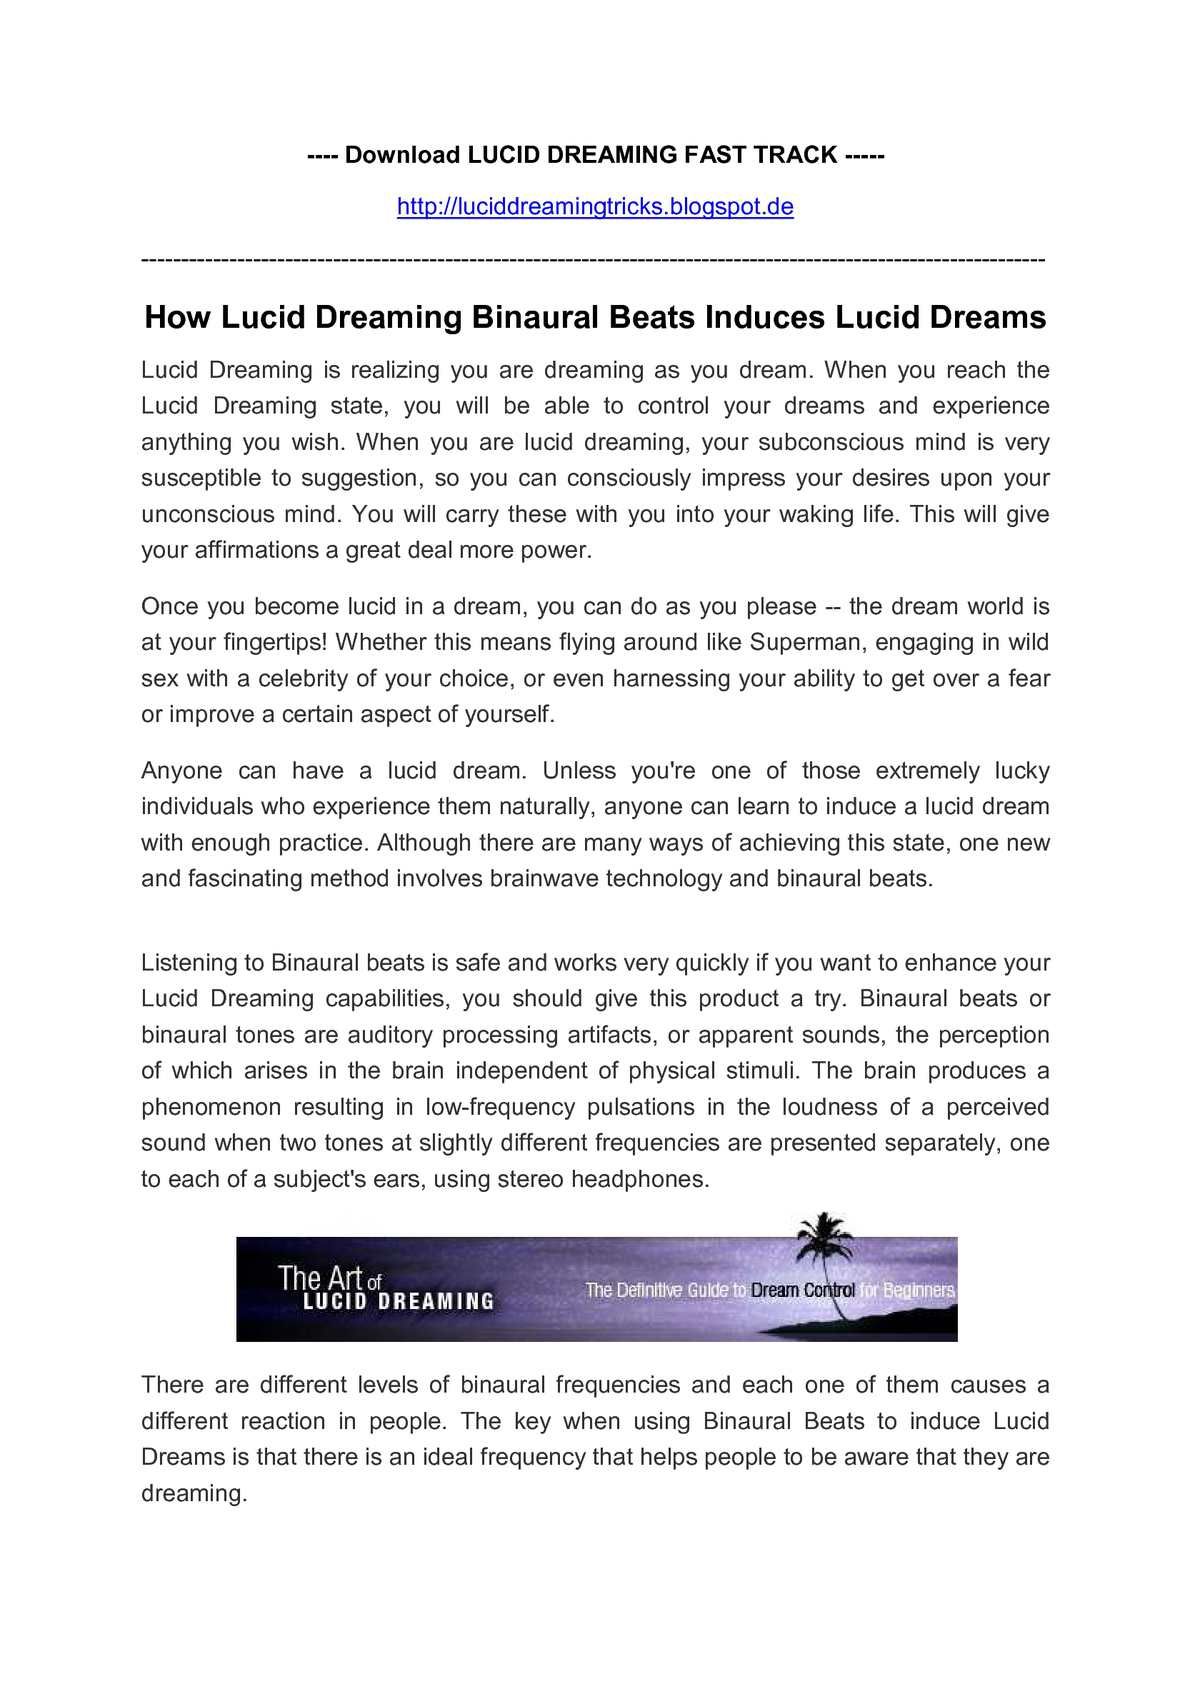 Calaméo - How Lucid Dreaming Binaural Beats Induces Lucid Dreams